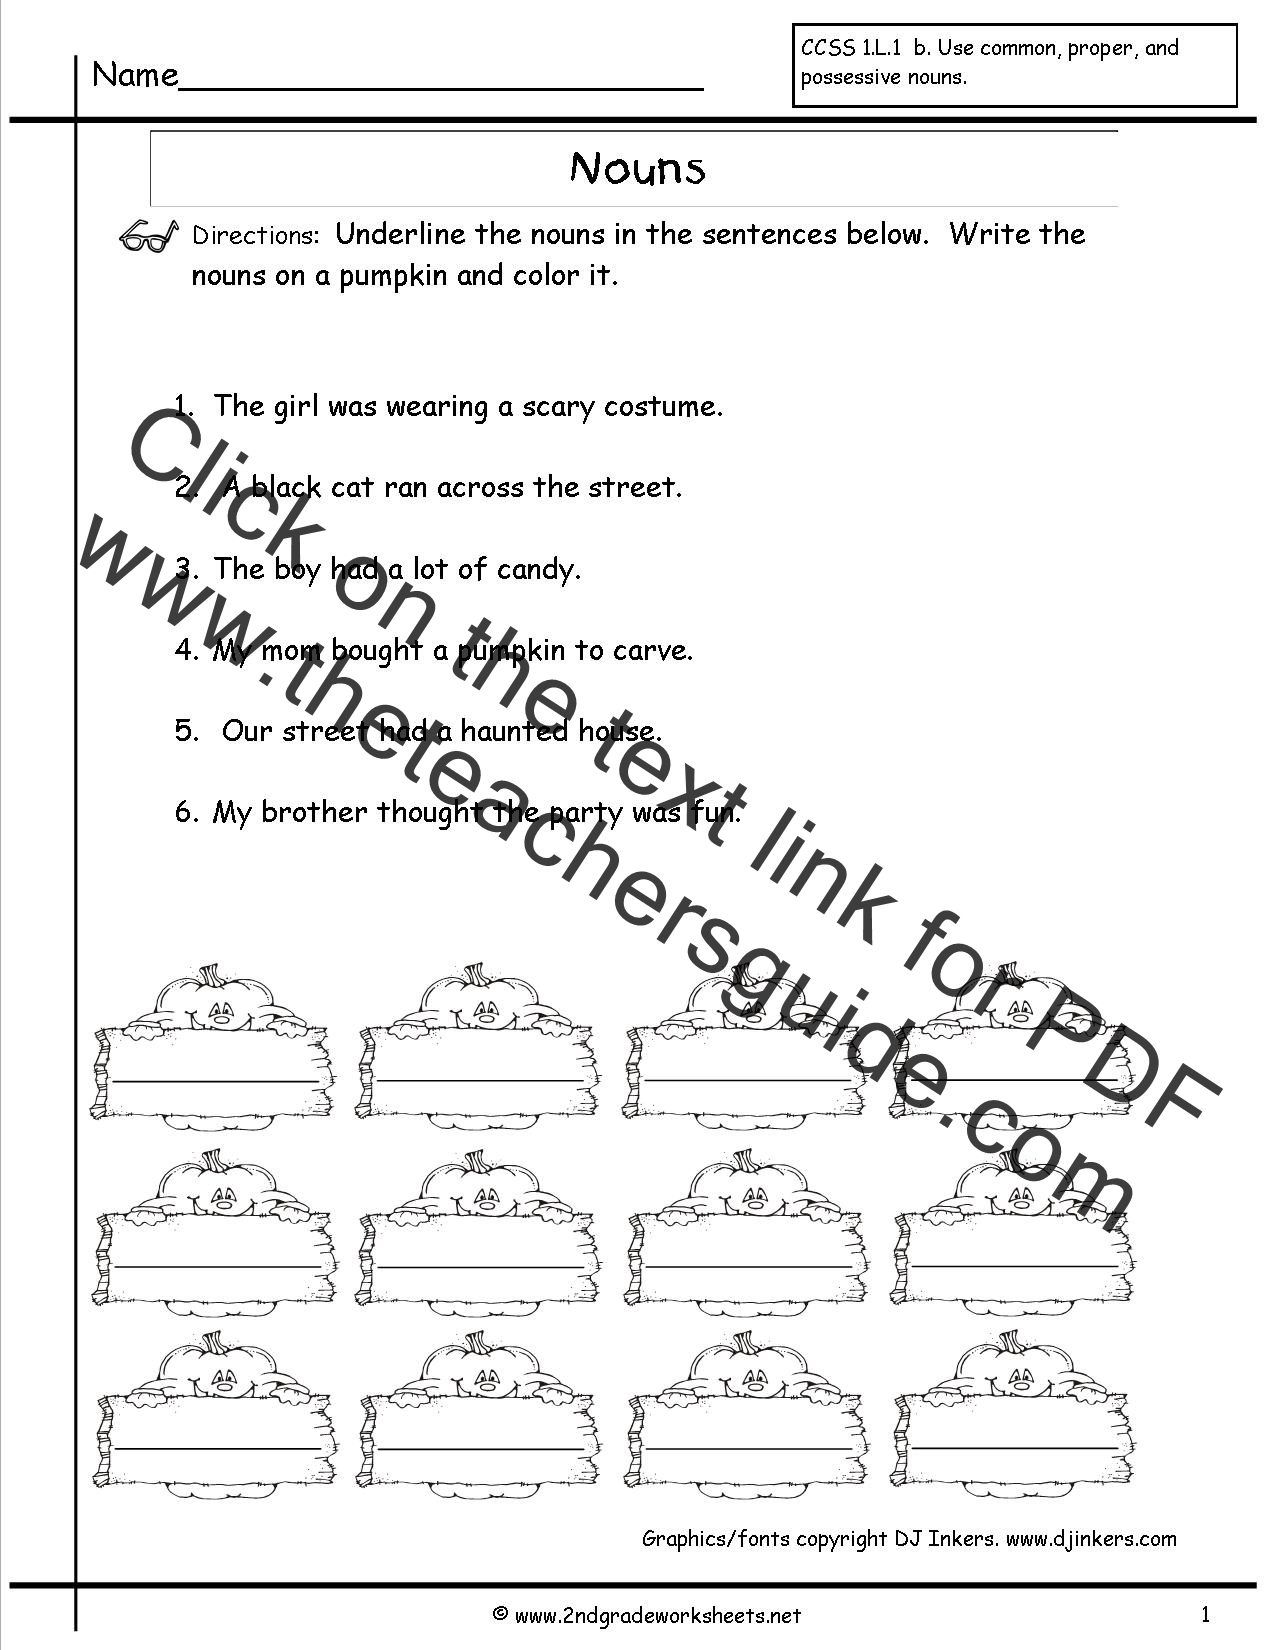 Worksheet Nouns Worksheets For Grade 1 nouns worksheets and printouts worksheet